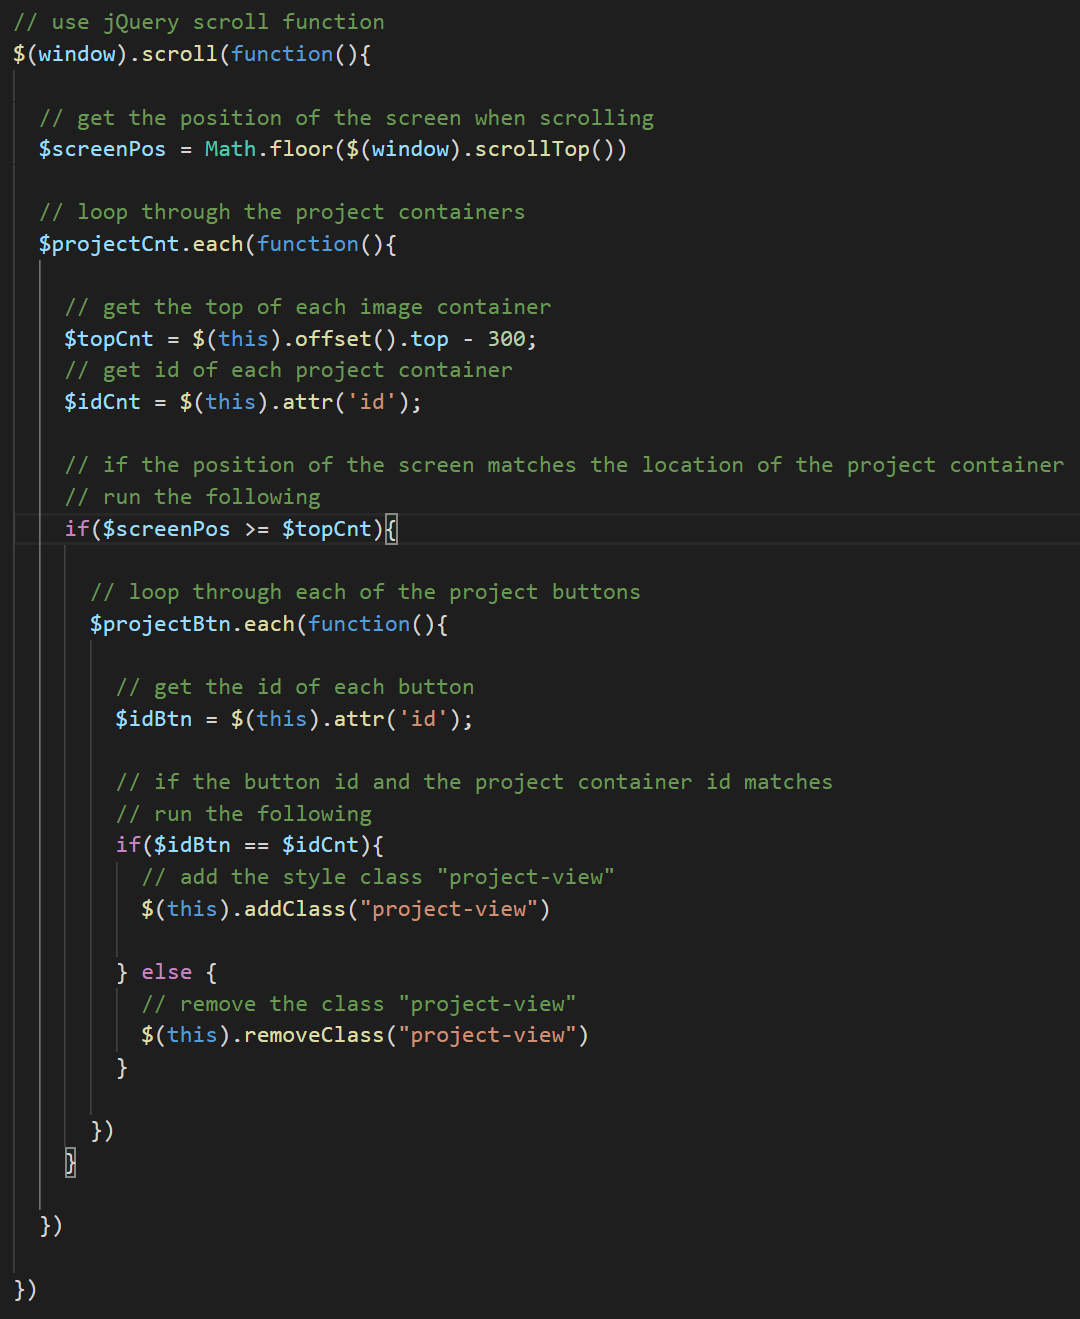 screenshot of the code used for the button coor on scroll